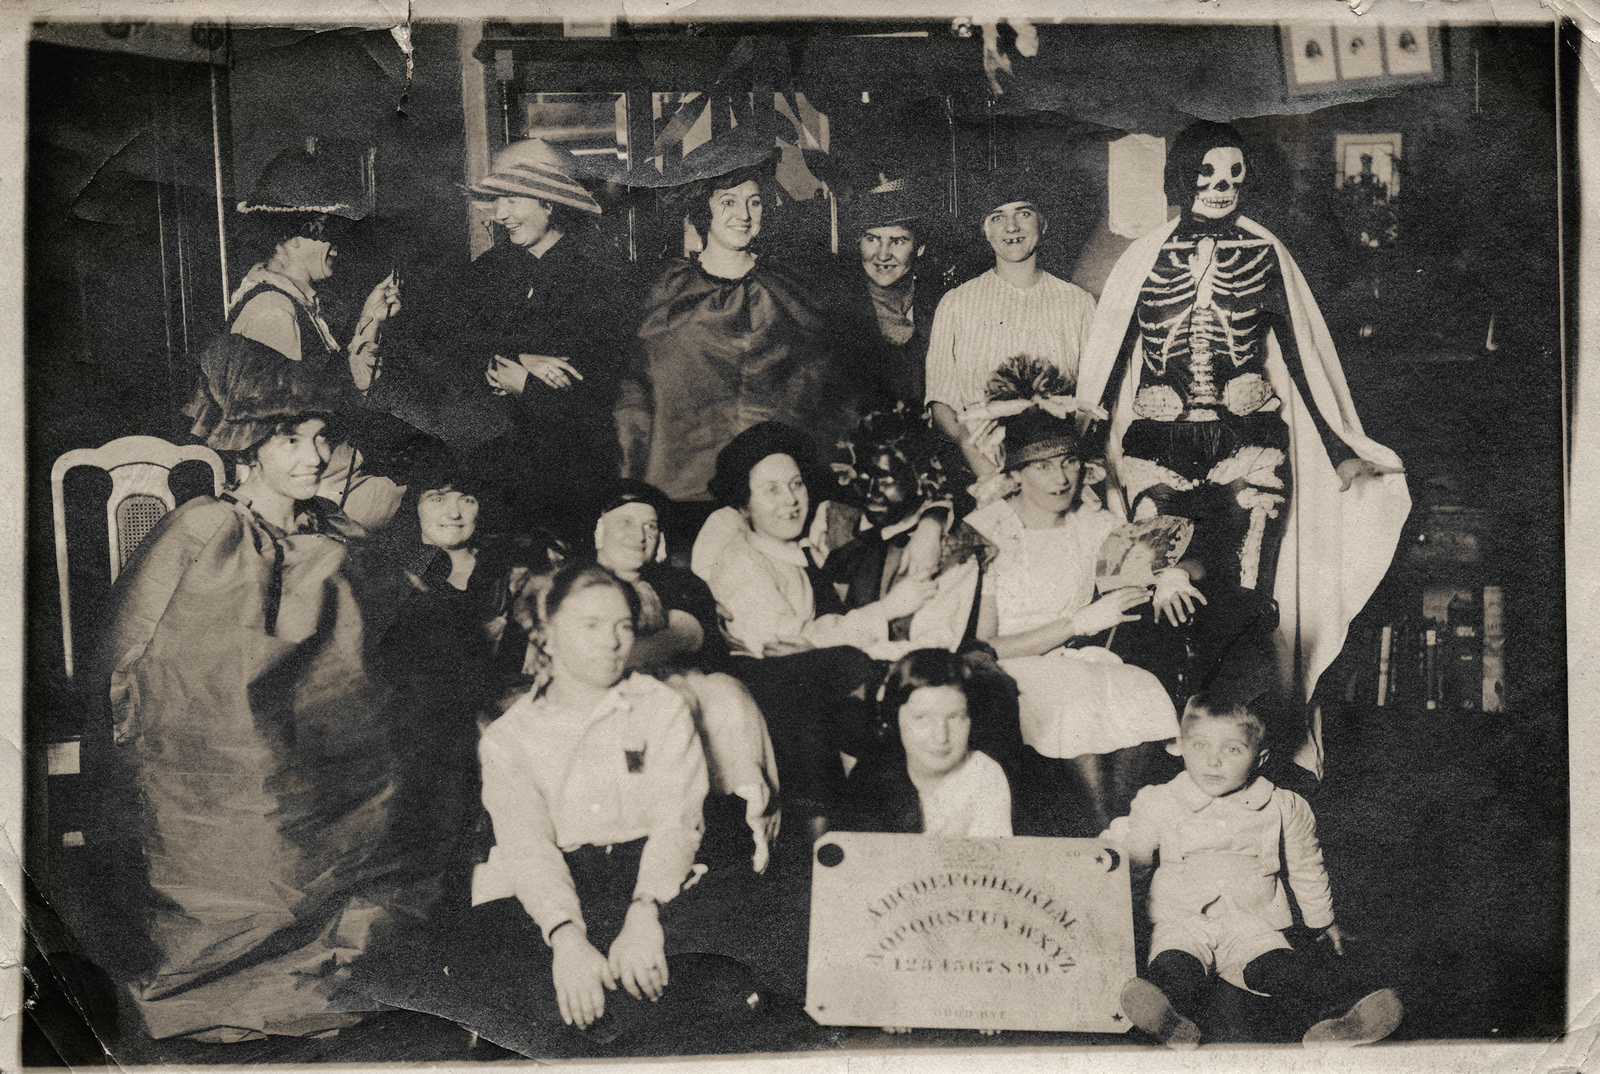 """""""Creepy Halloween party with Ouija Board"""" by simpleinsomnia, licensed under CC BY 2.0"""